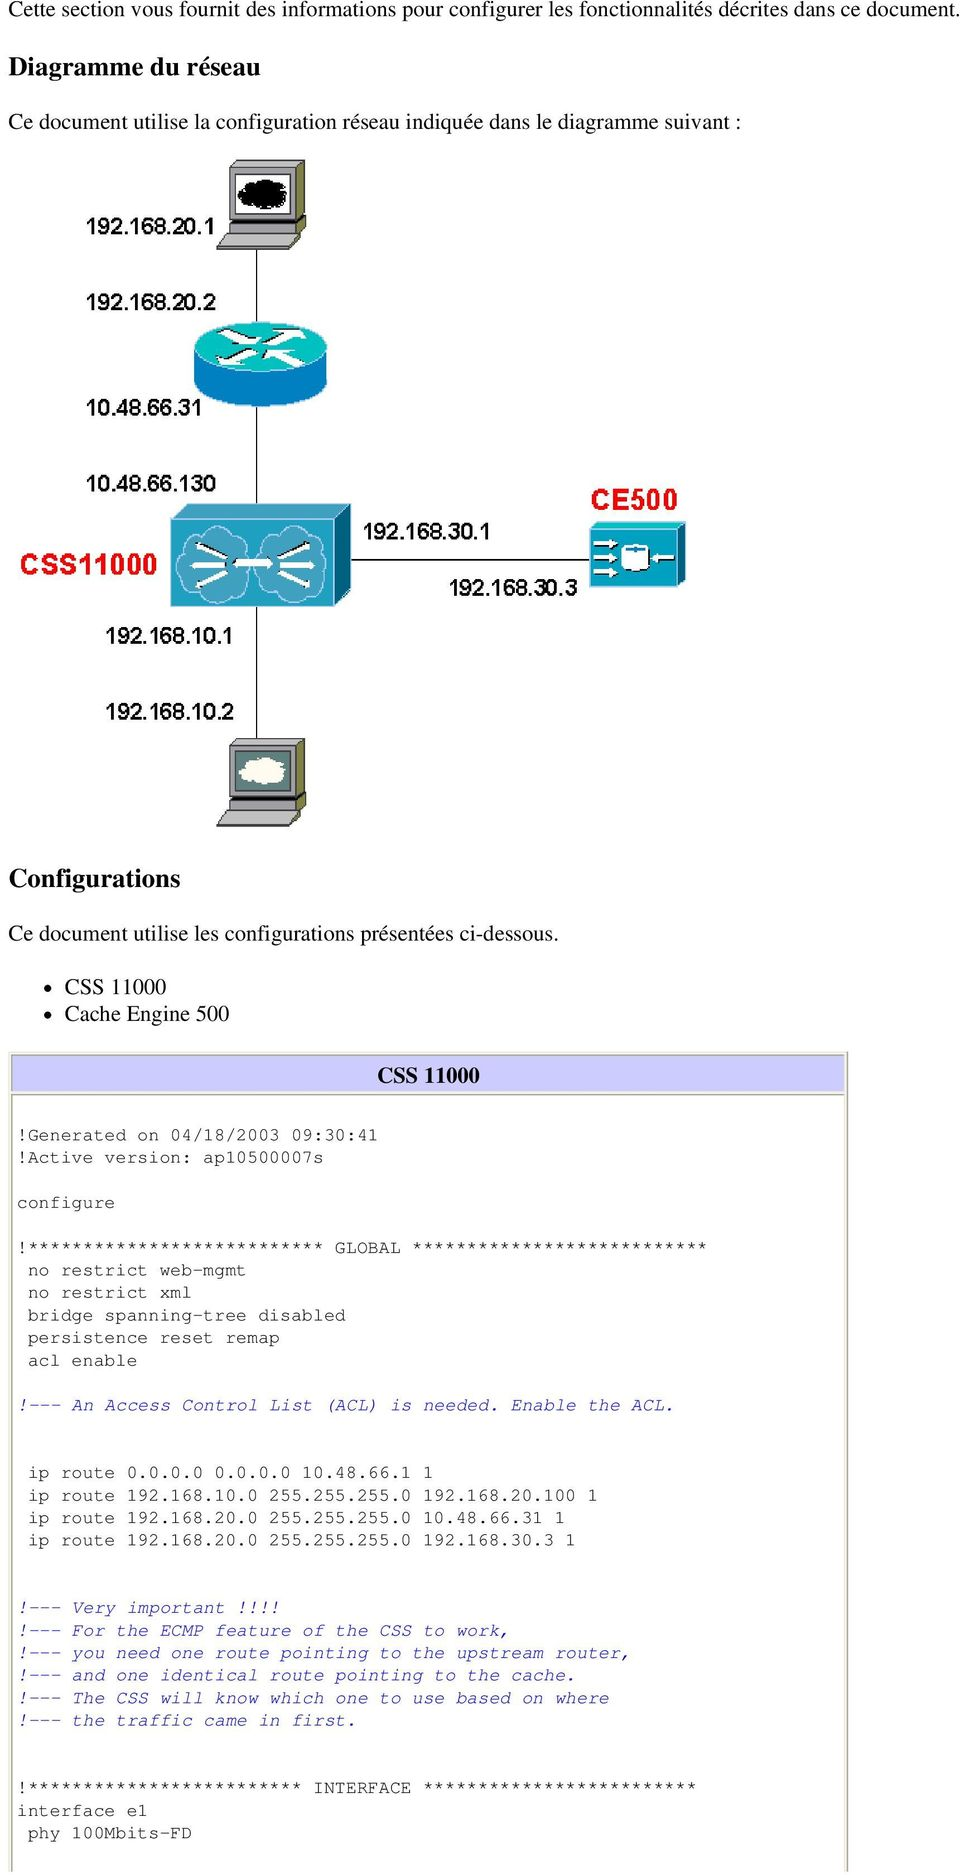 CSS 11000 Cache Engine 500 CSS 11000 Generated on 04/18/2003 09:30:41 Active version: ap10500007s configure *************************** GLOBAL *************************** no restrict web-mgmt no